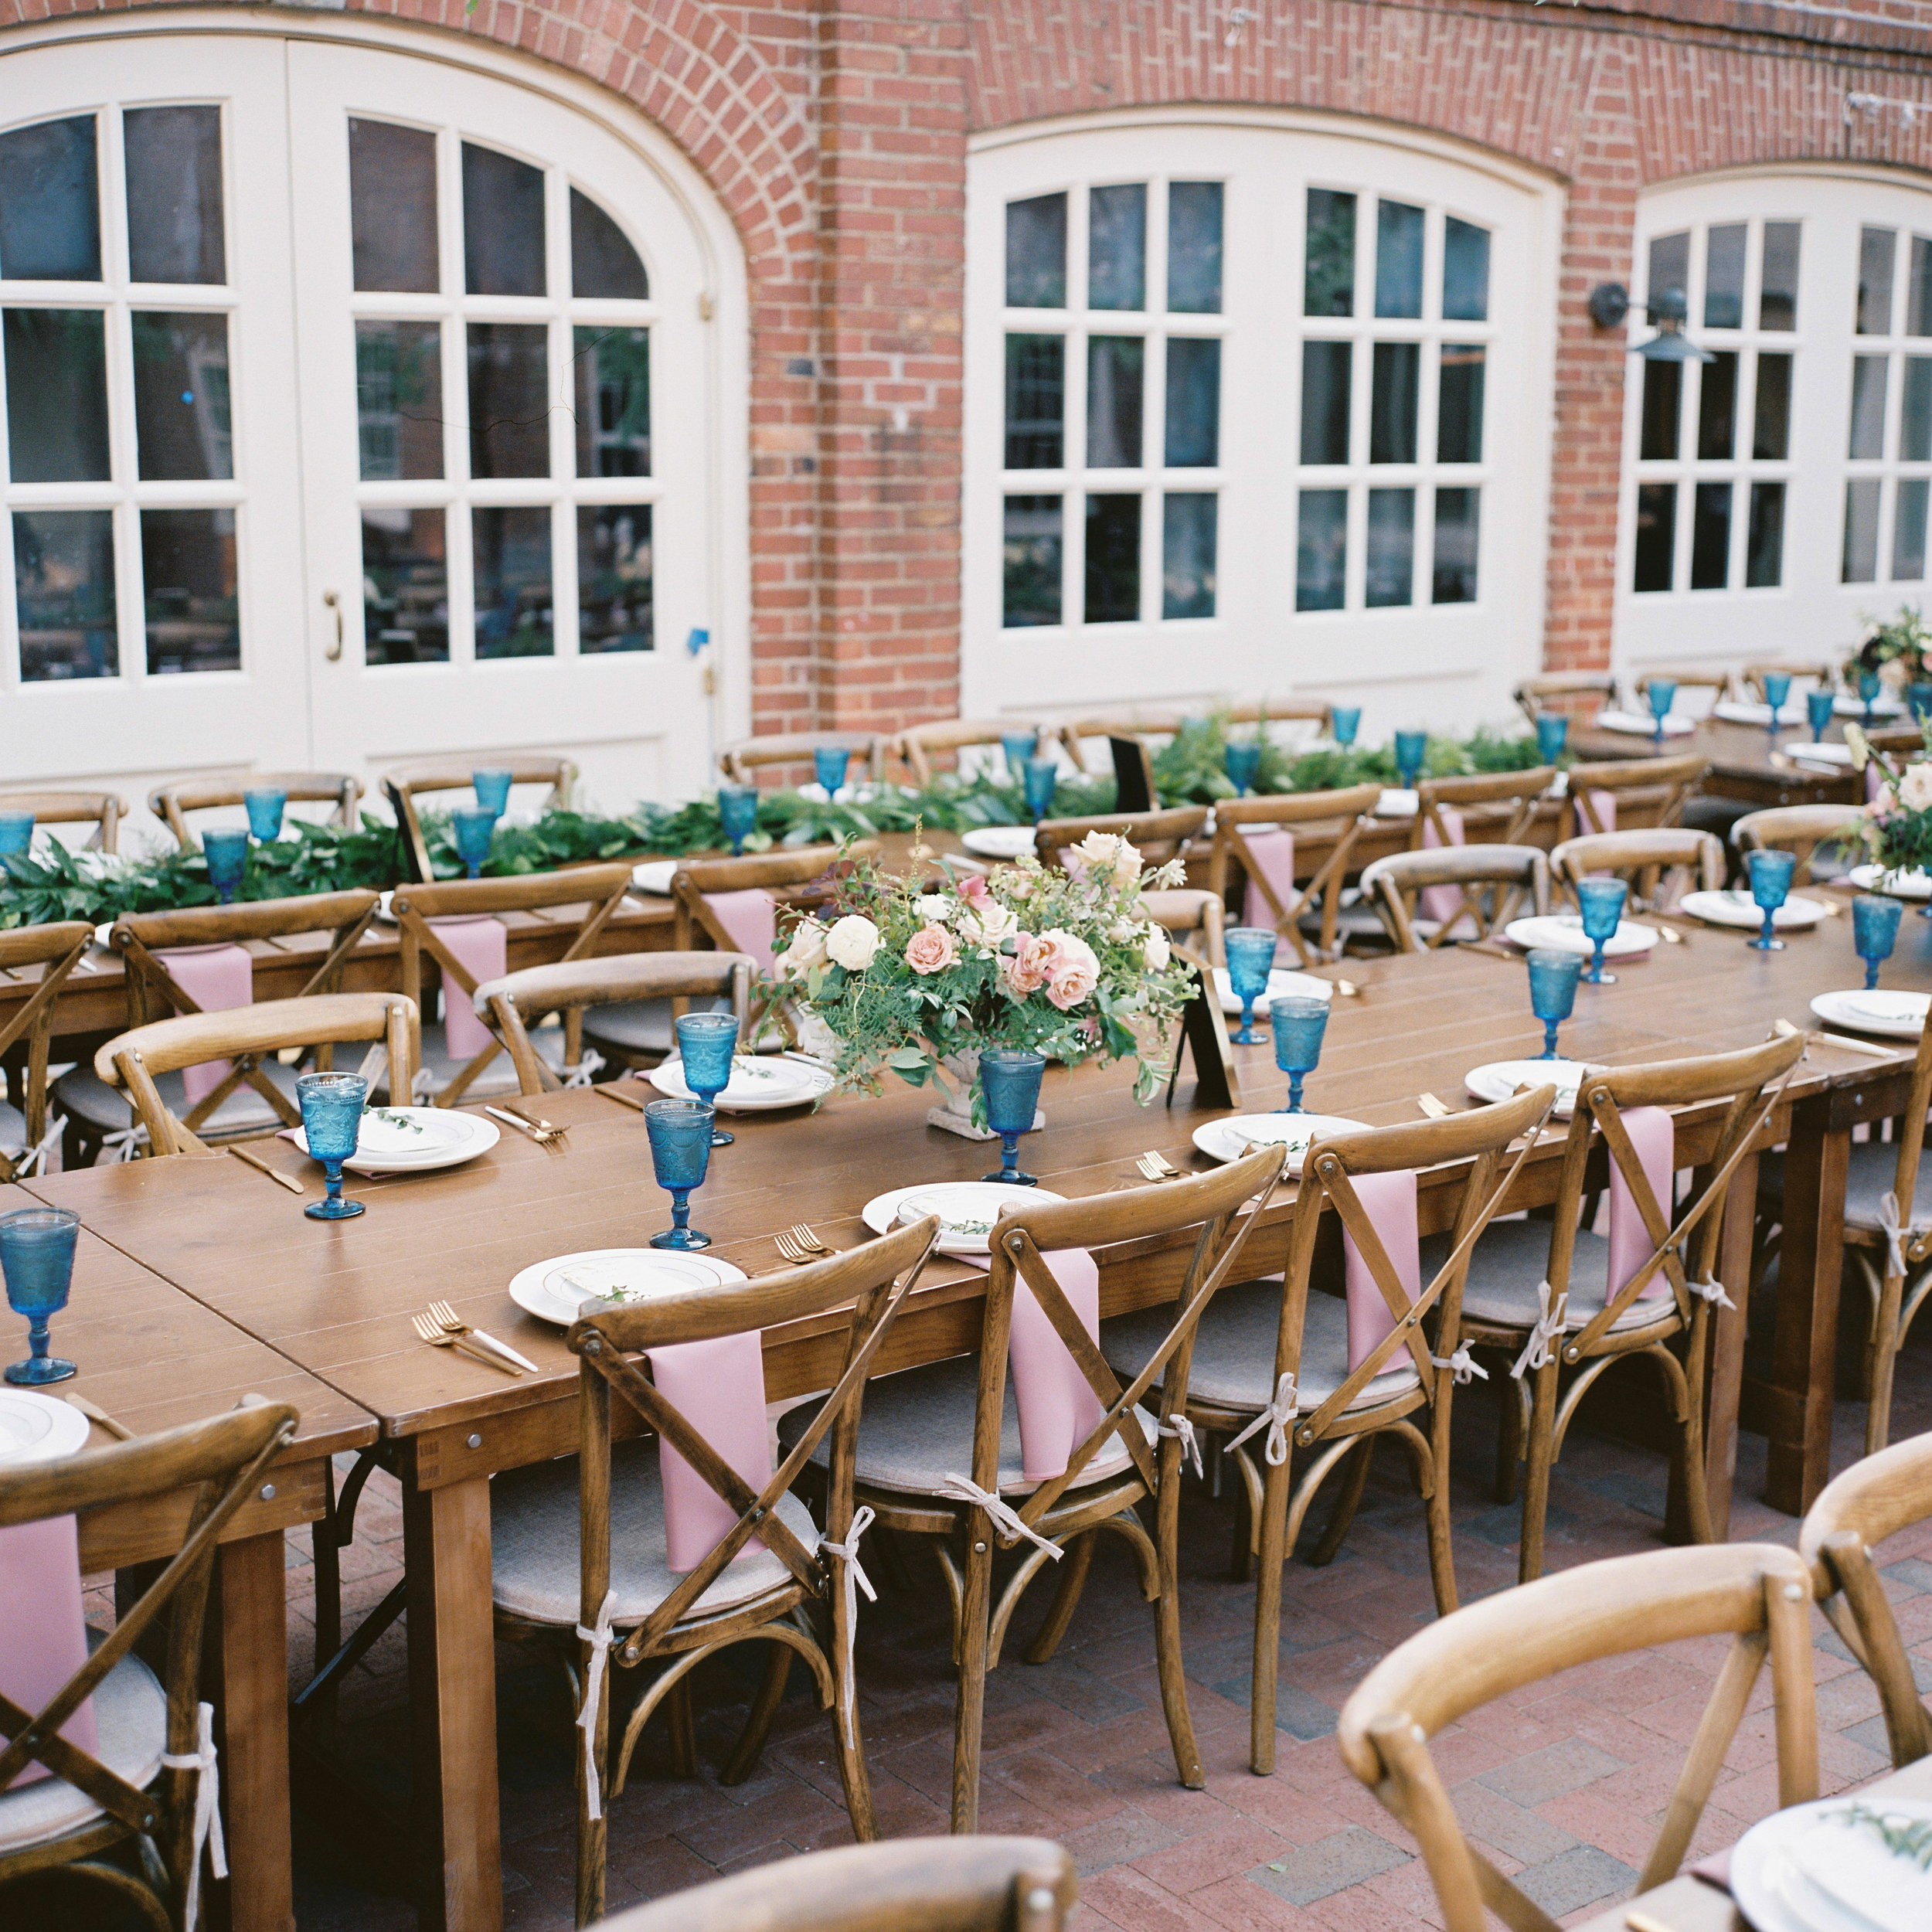 Wooden Farm Table with garden urns centerpieces // Southeastern Floral Design